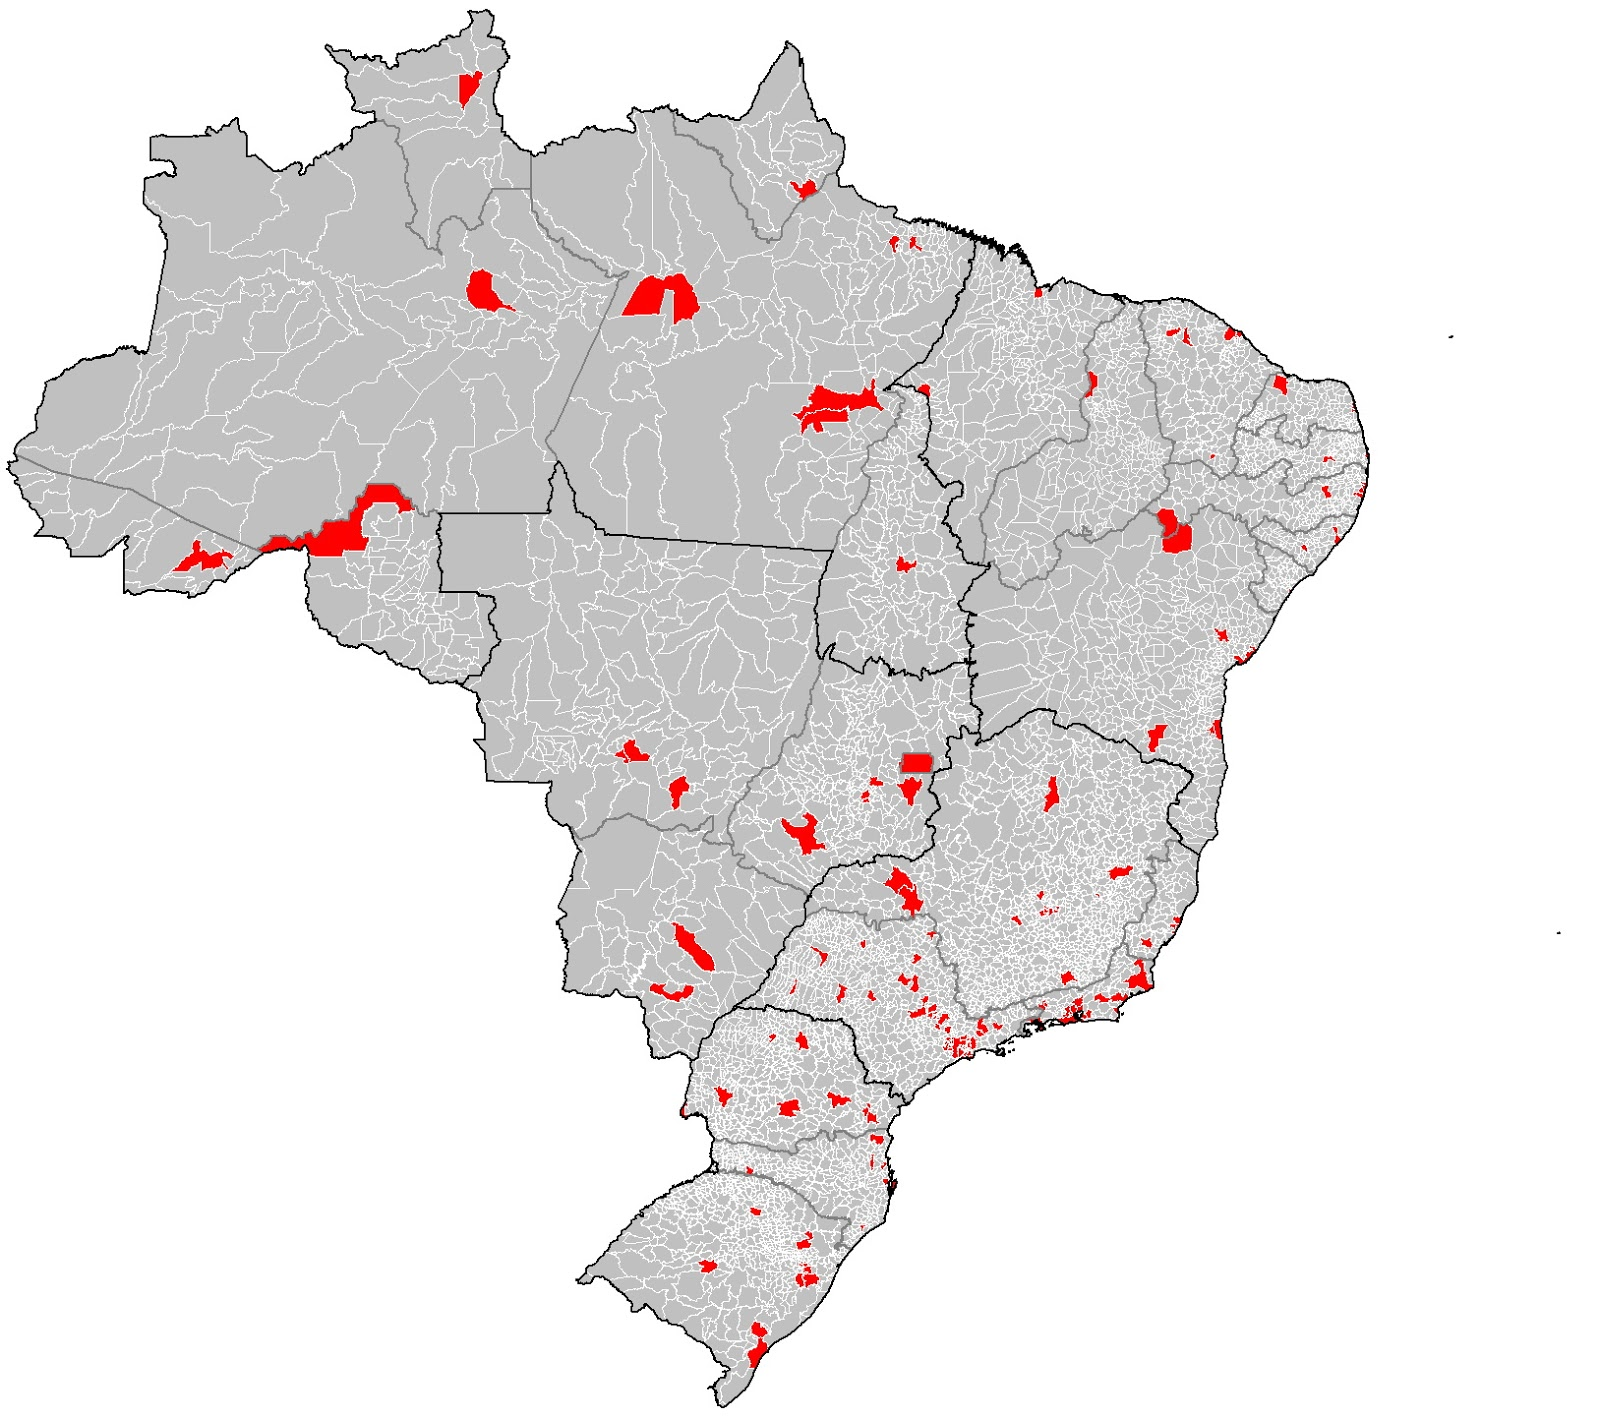 Half the population of Brazil